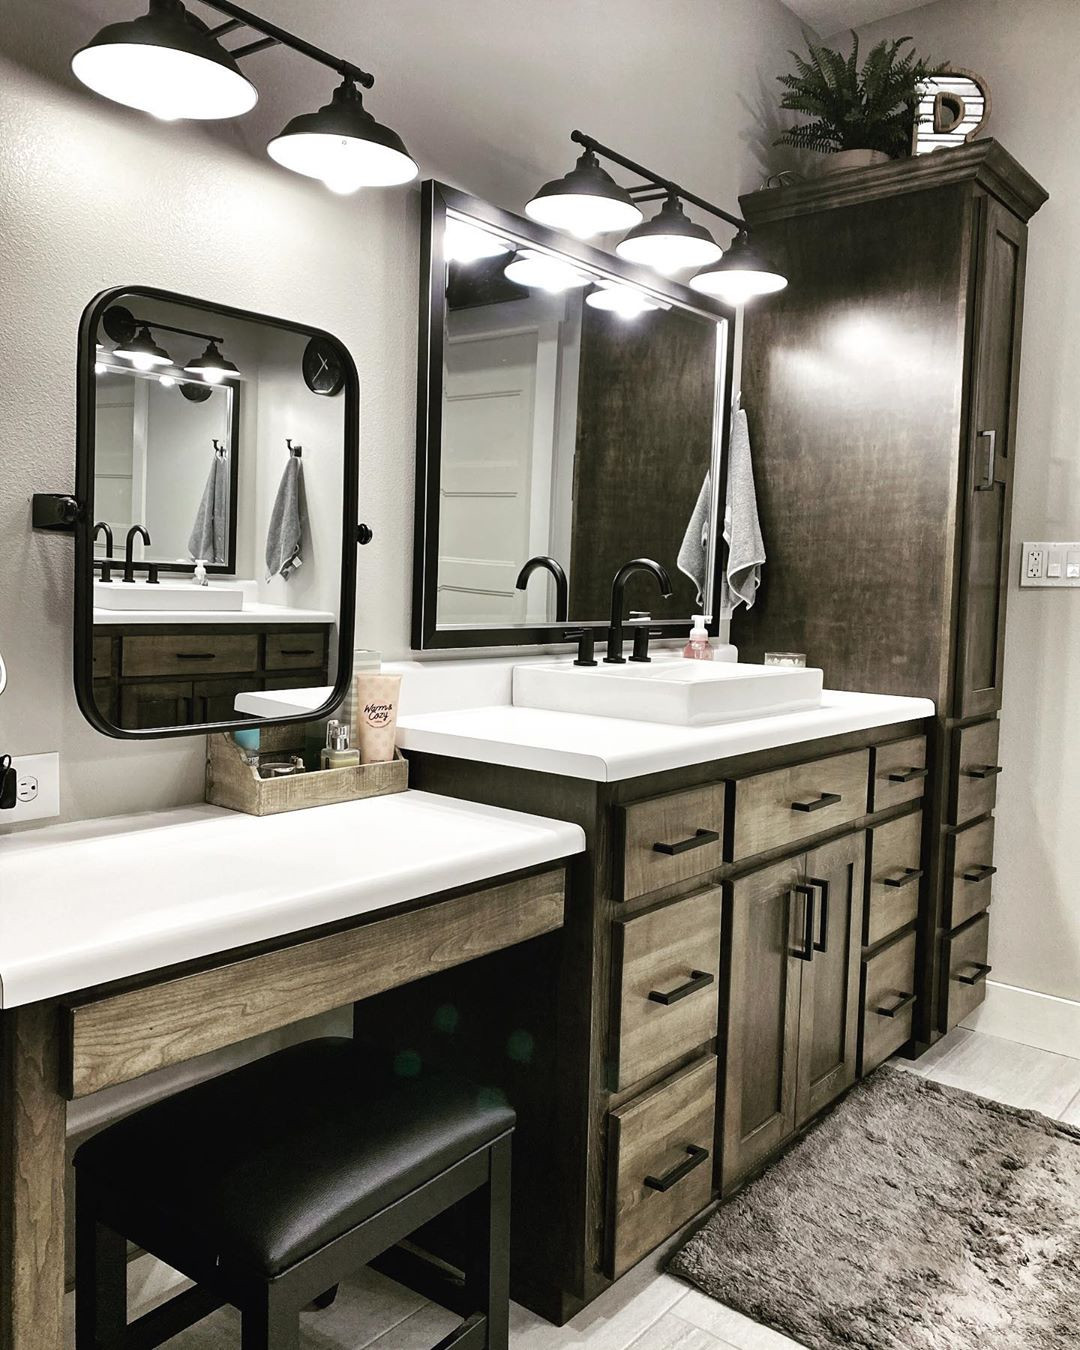 52 Rustic Bathrooms That Will Inspire Your Next Makeover,modern rustic bathroom ideas,rustic bathroom ideas photo gallery,small rustic bathroom ideas on a budget